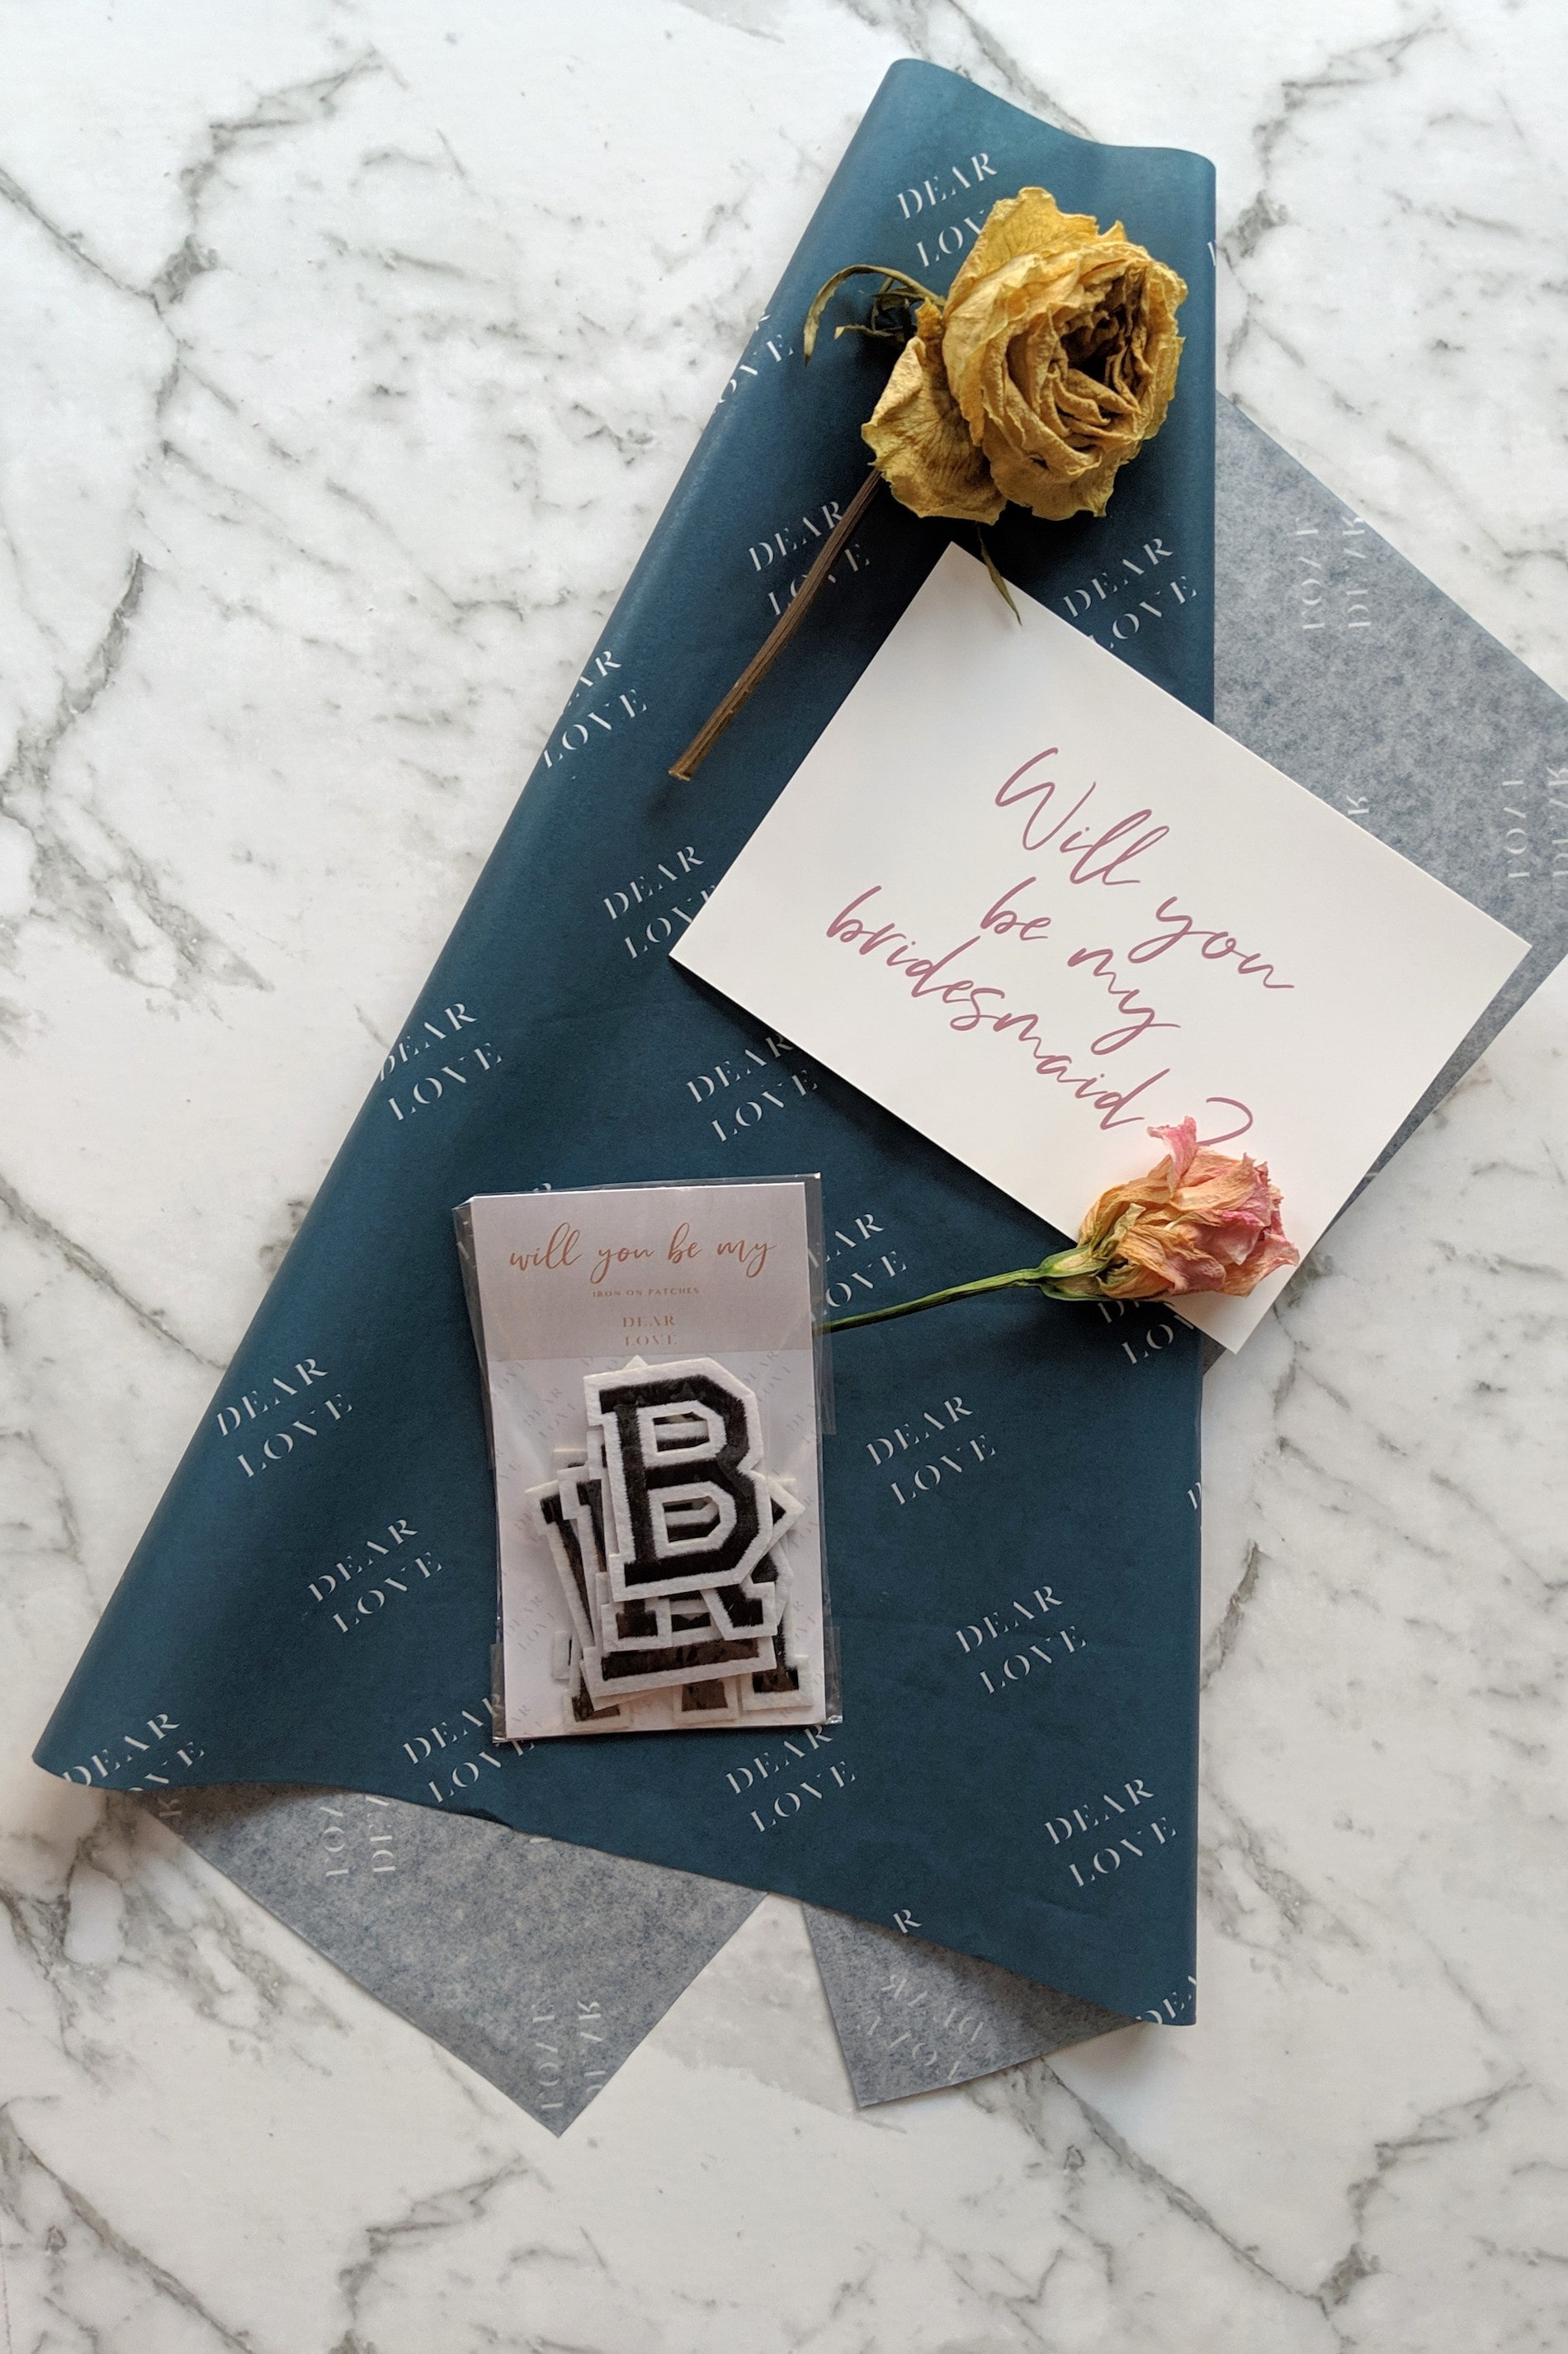 Dear Love custom tissue paper with thank you note